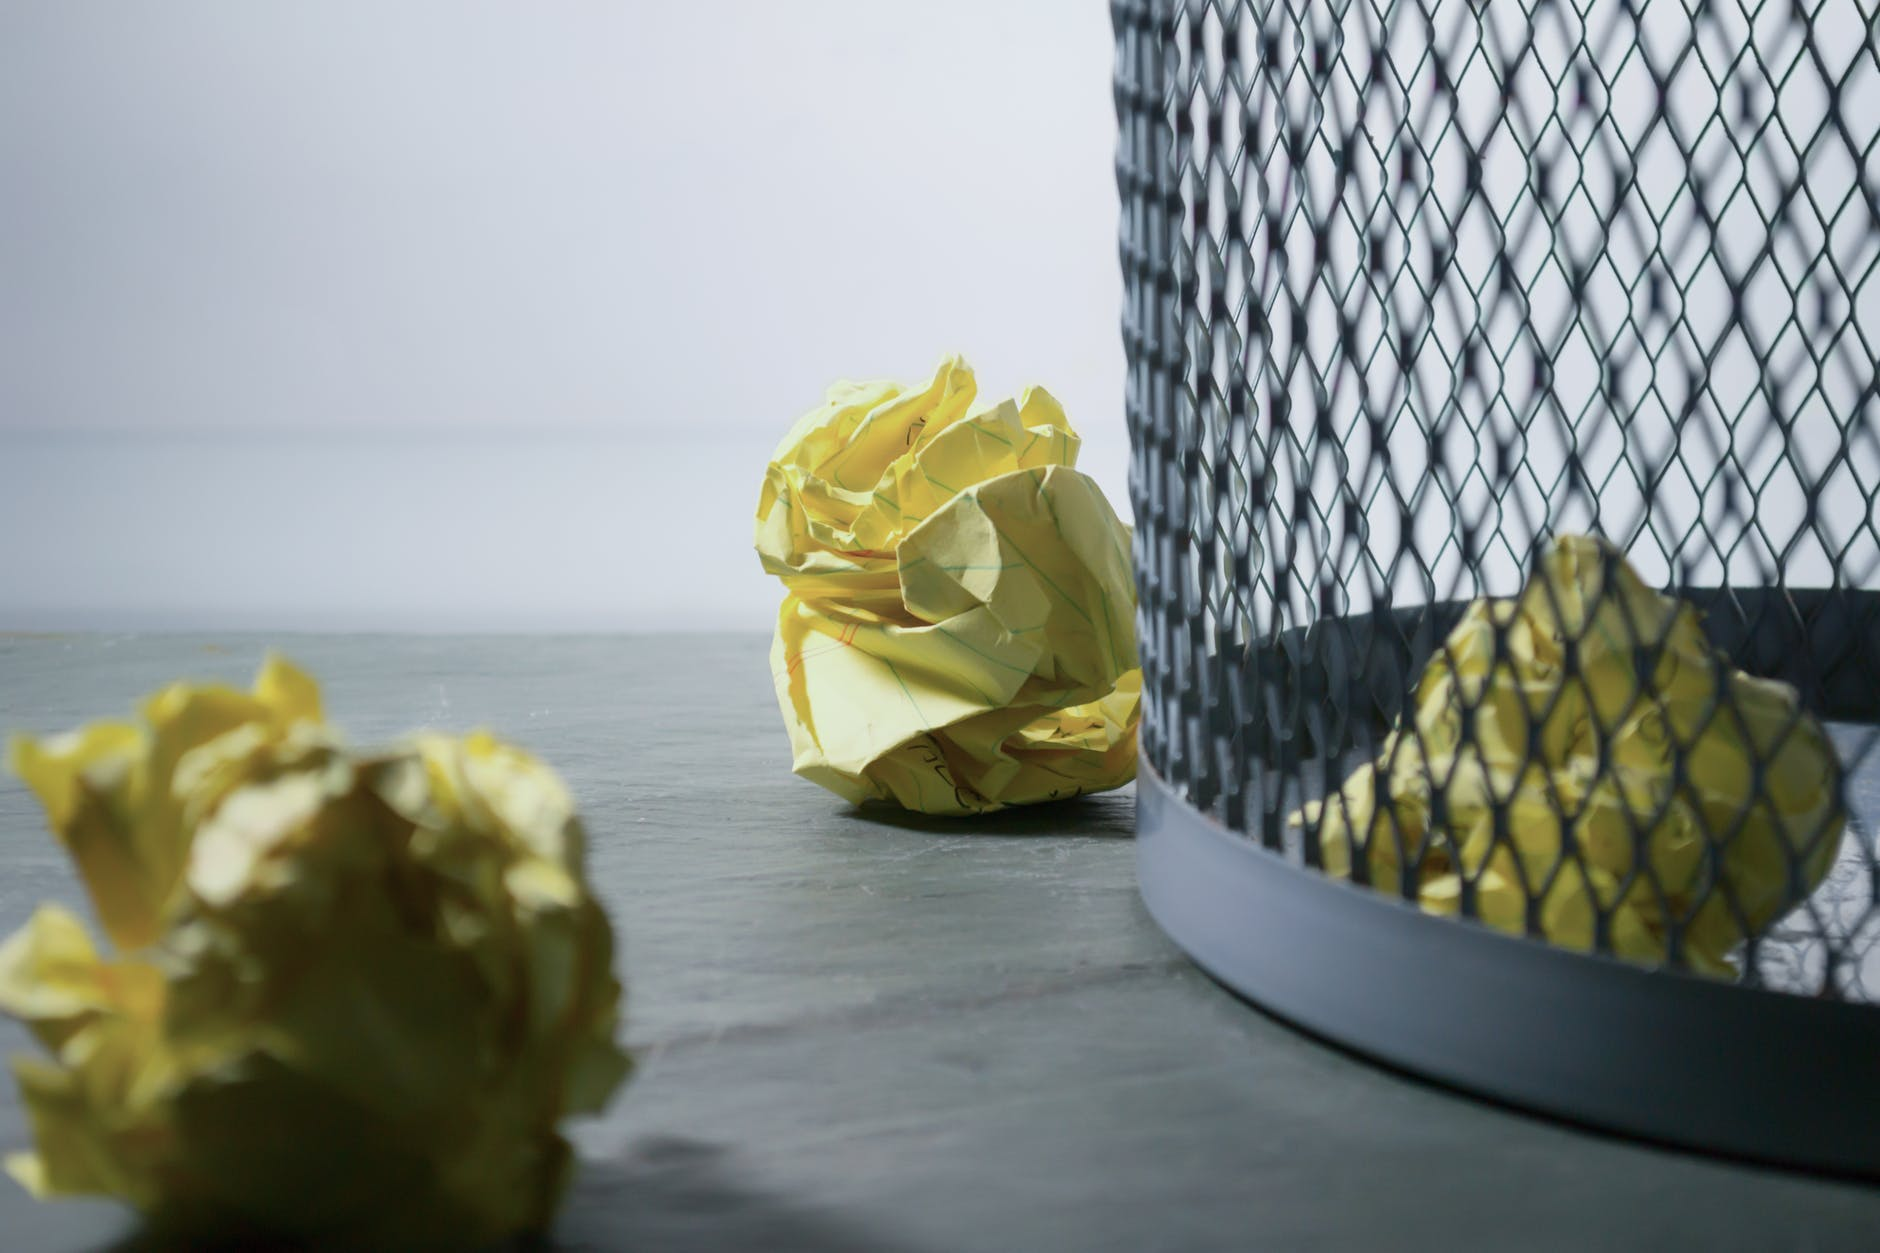 focus photo of yellow paper near trash can showing failure isn't real and that It's okay to feel unaccomplished